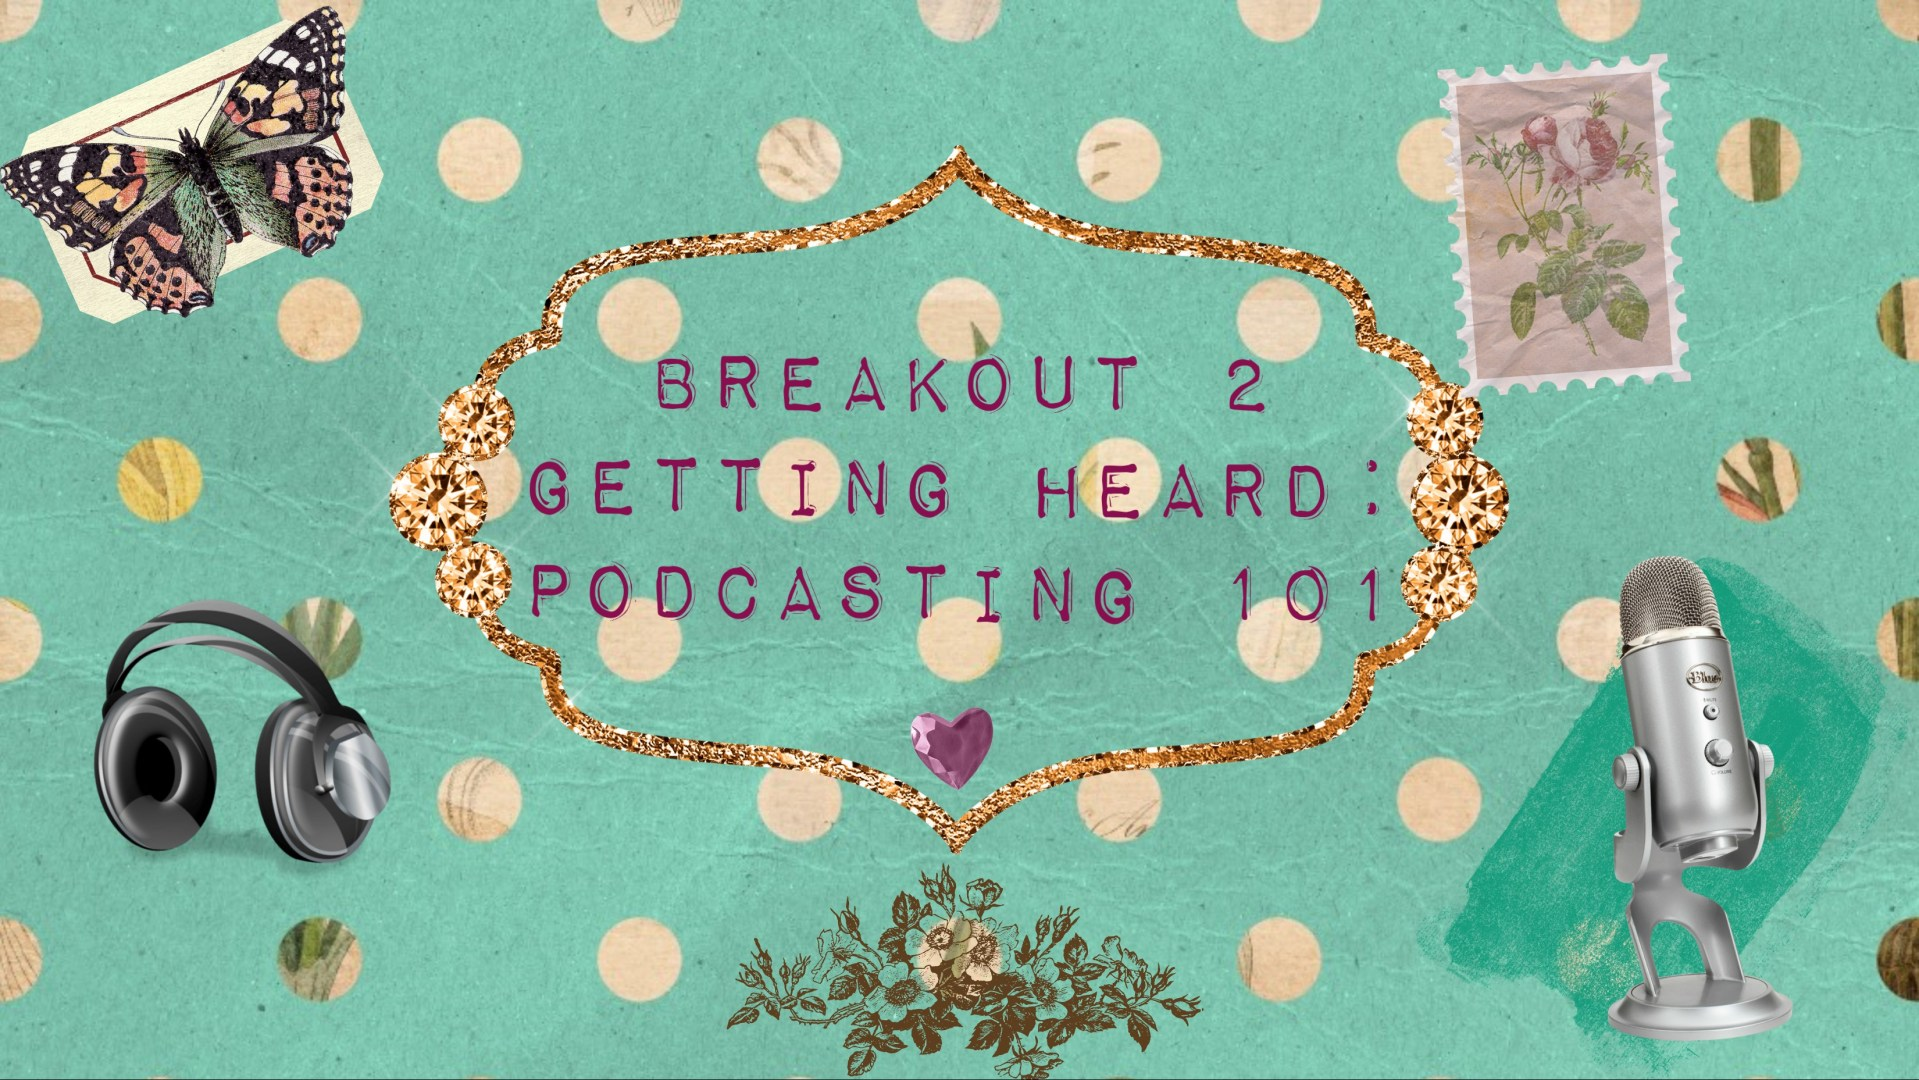 Breakout 2: Getting Heard! Podcasting 101